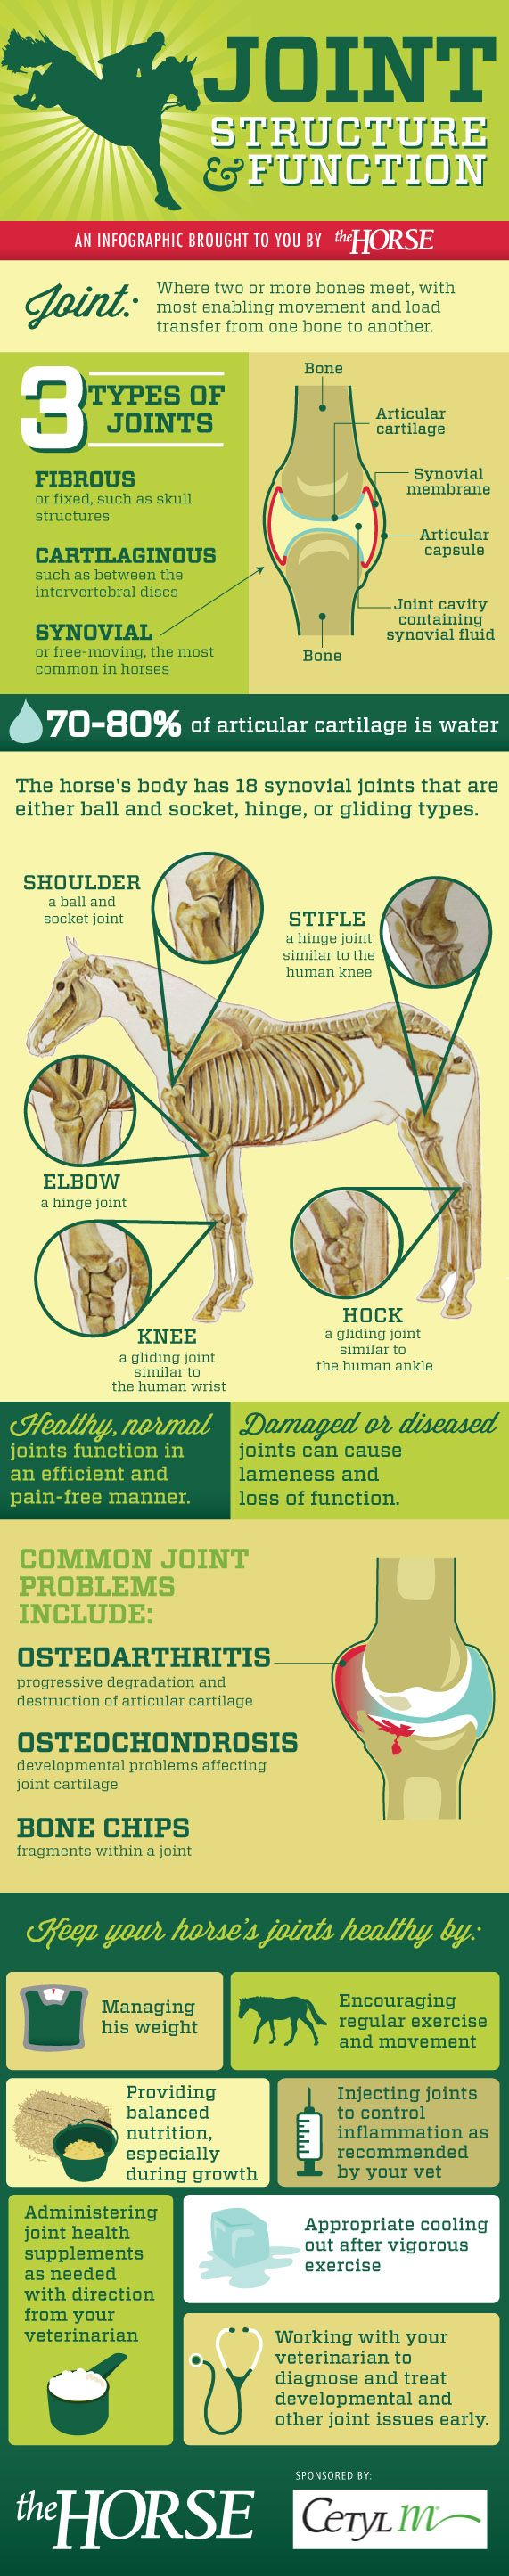 [INFOGRAPHIC] Learn about how horse joints work and how you can keep your horse's joints healthy with this step-by-step visual guide, brought to you by TheHorse.com and Response Products (Advanced Cetyl M). #horses #horsehealth